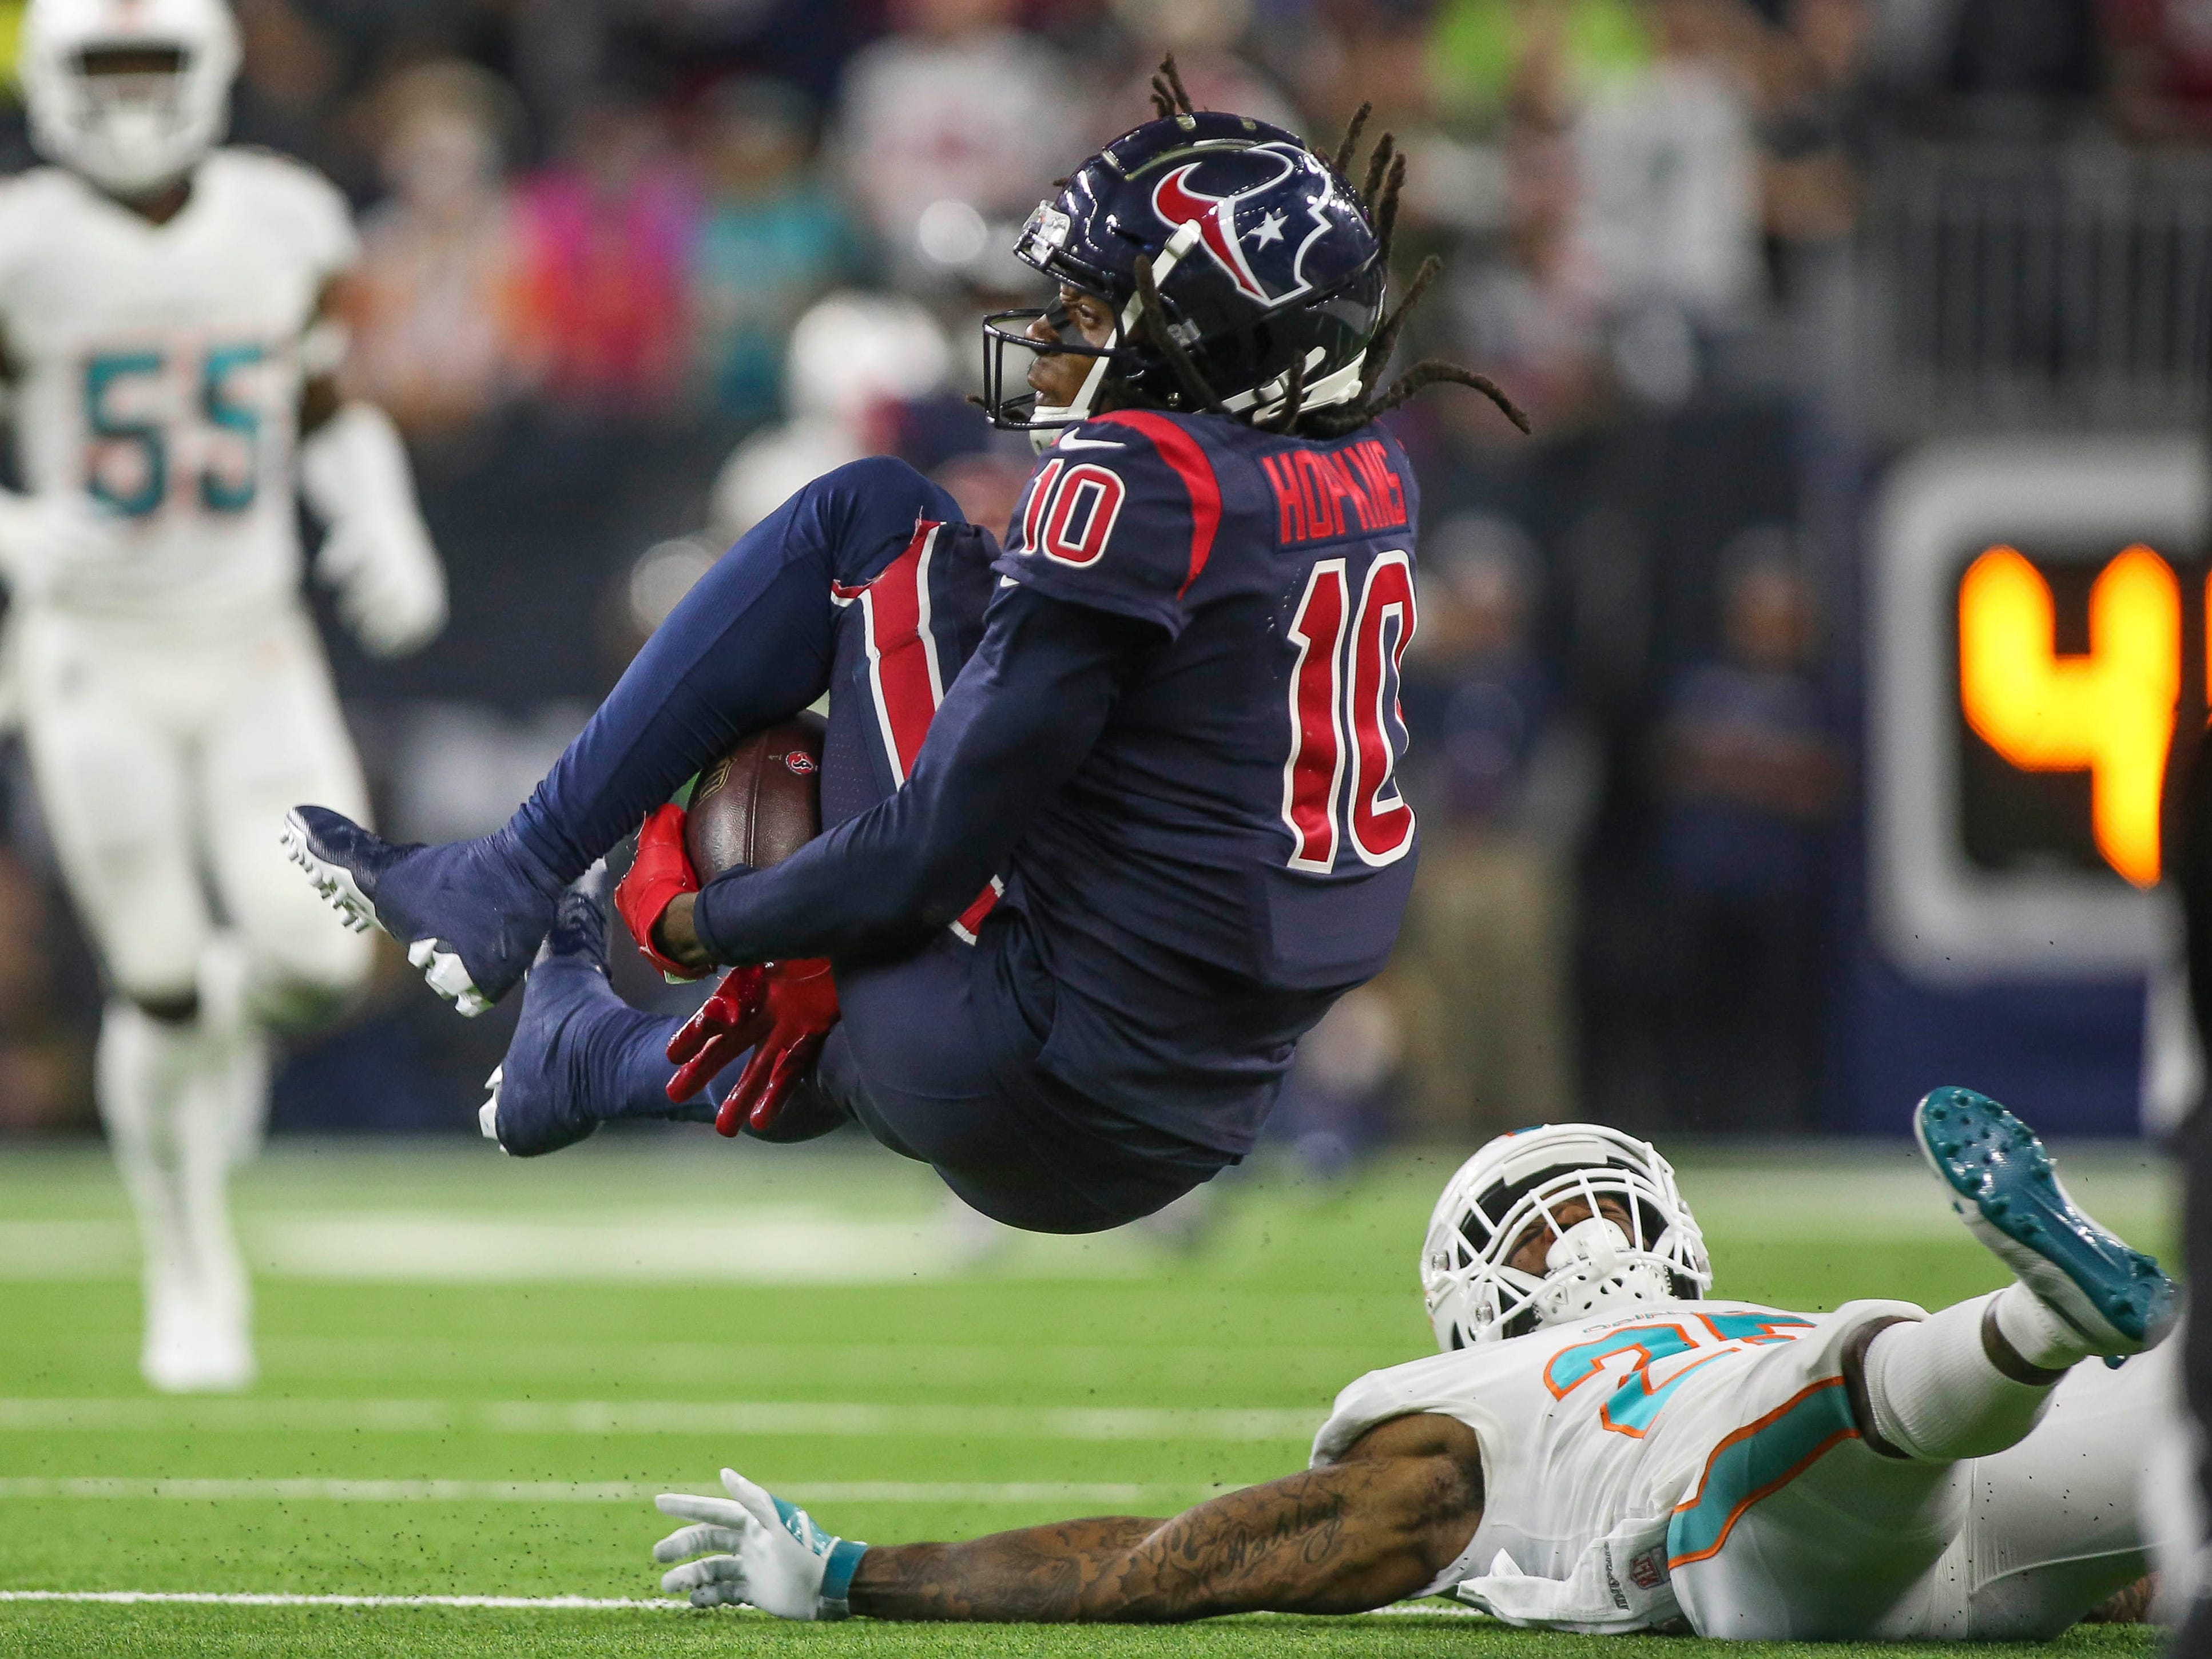 Week 8: Houston Texans wide receiver DeAndre Hopkins attempts to make a reception during the third quarter against the Miami Dolphins at NRG Stadium. The Texans won the game, 42-23.